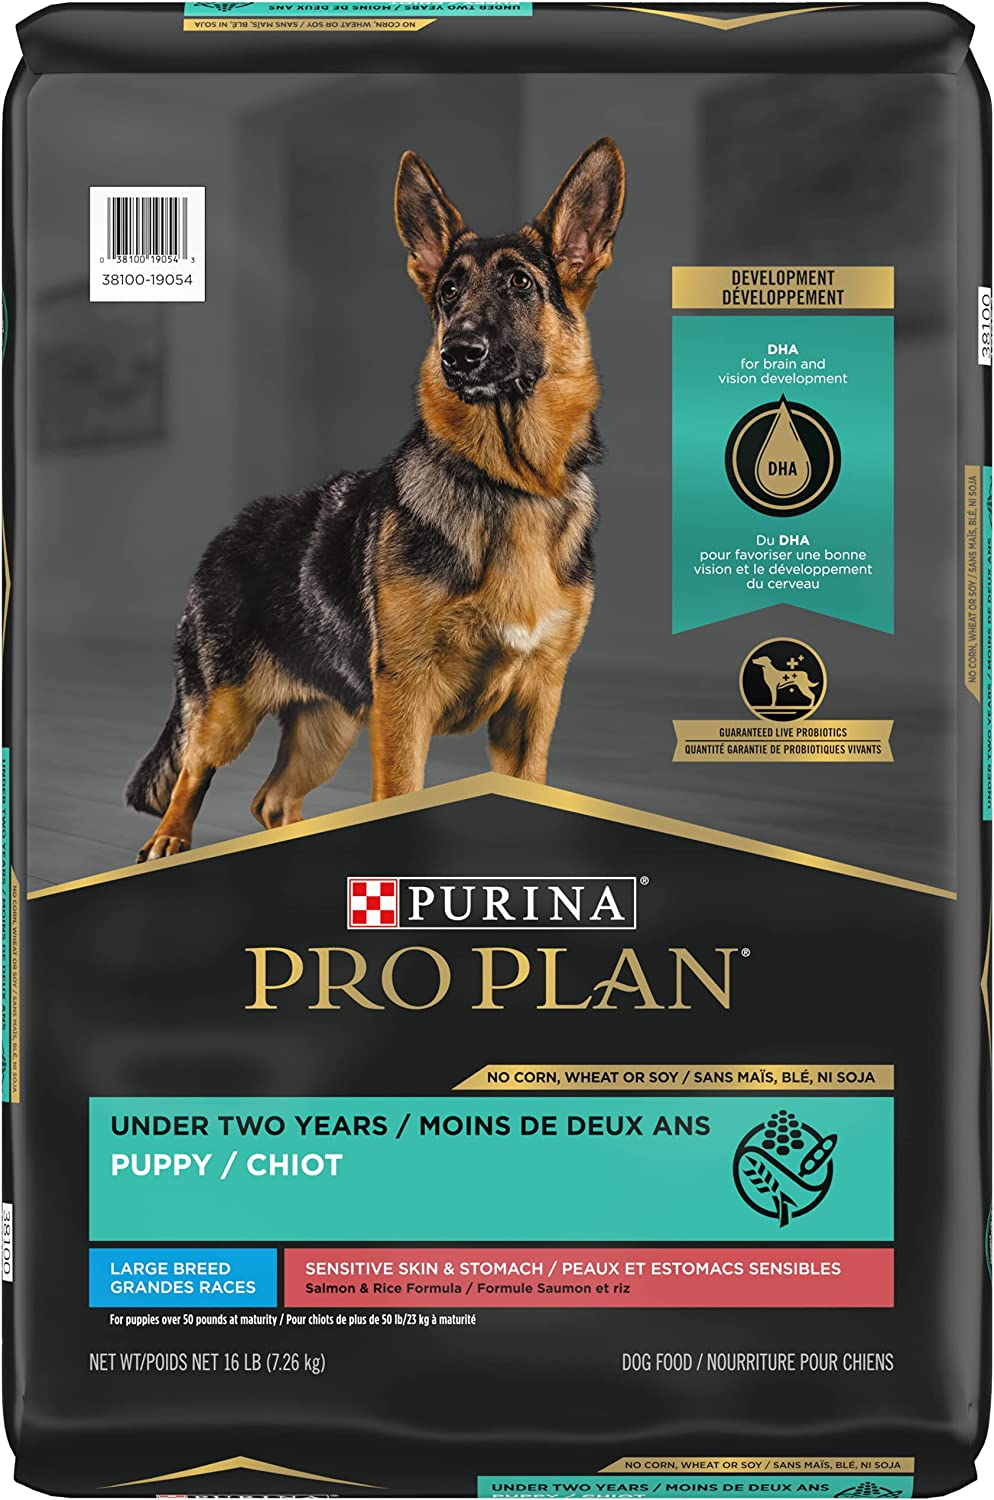 Purina Pro Plan Sensitive Skin and Stomach Large Breed Puppy Food with Probiotics, Salmon & Rice Formula - 16 lb. Bag